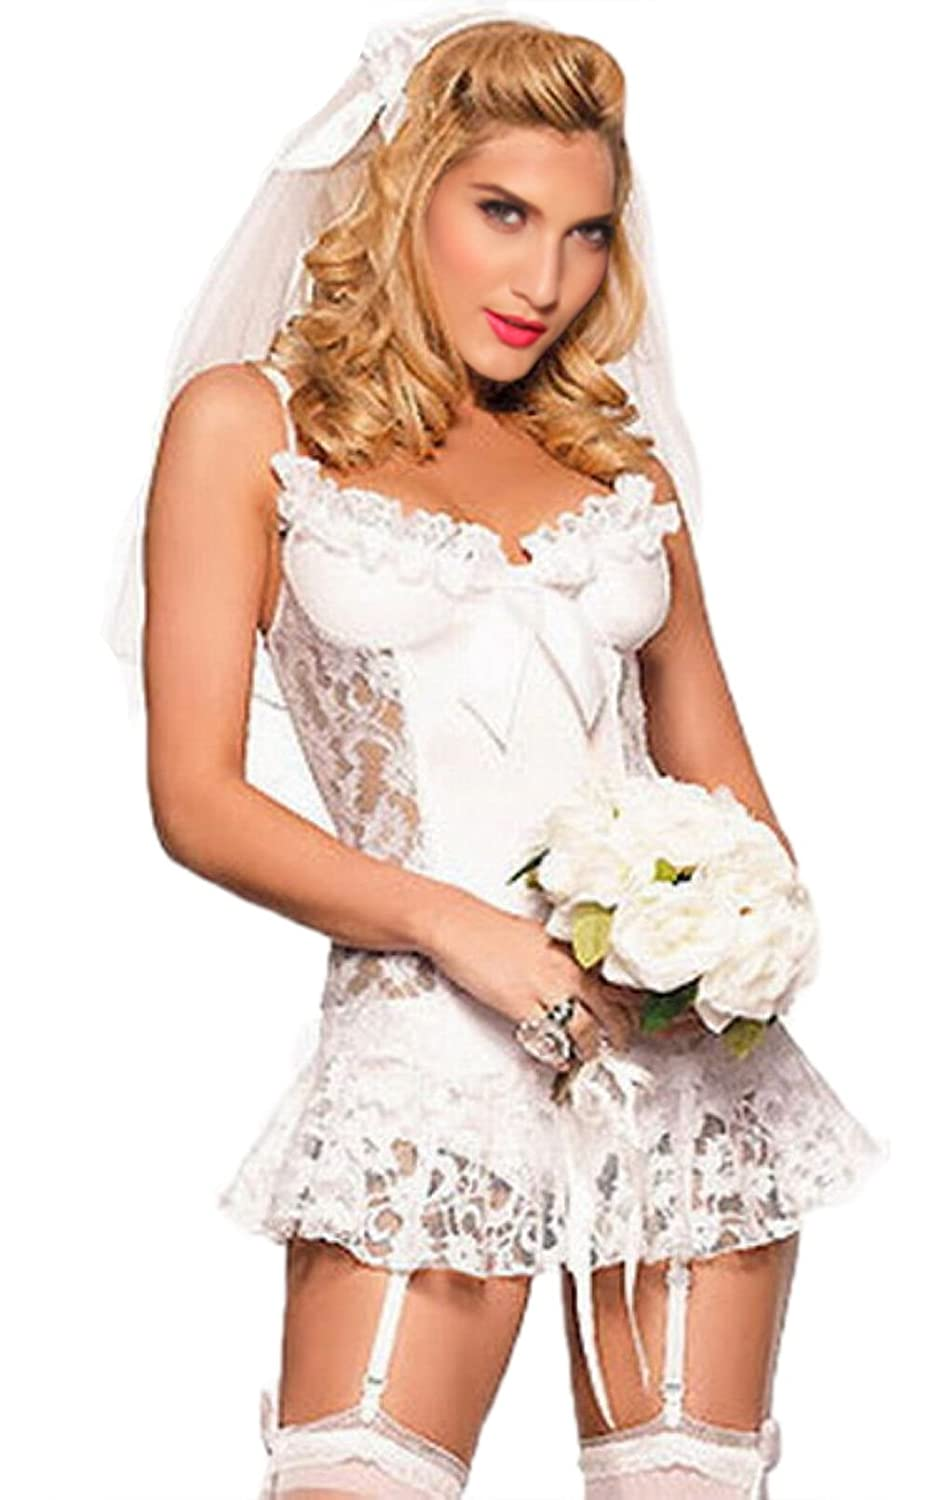 Amazon.com JJ,GOGO Sexy Bride Costume , Fancy Women Bridal